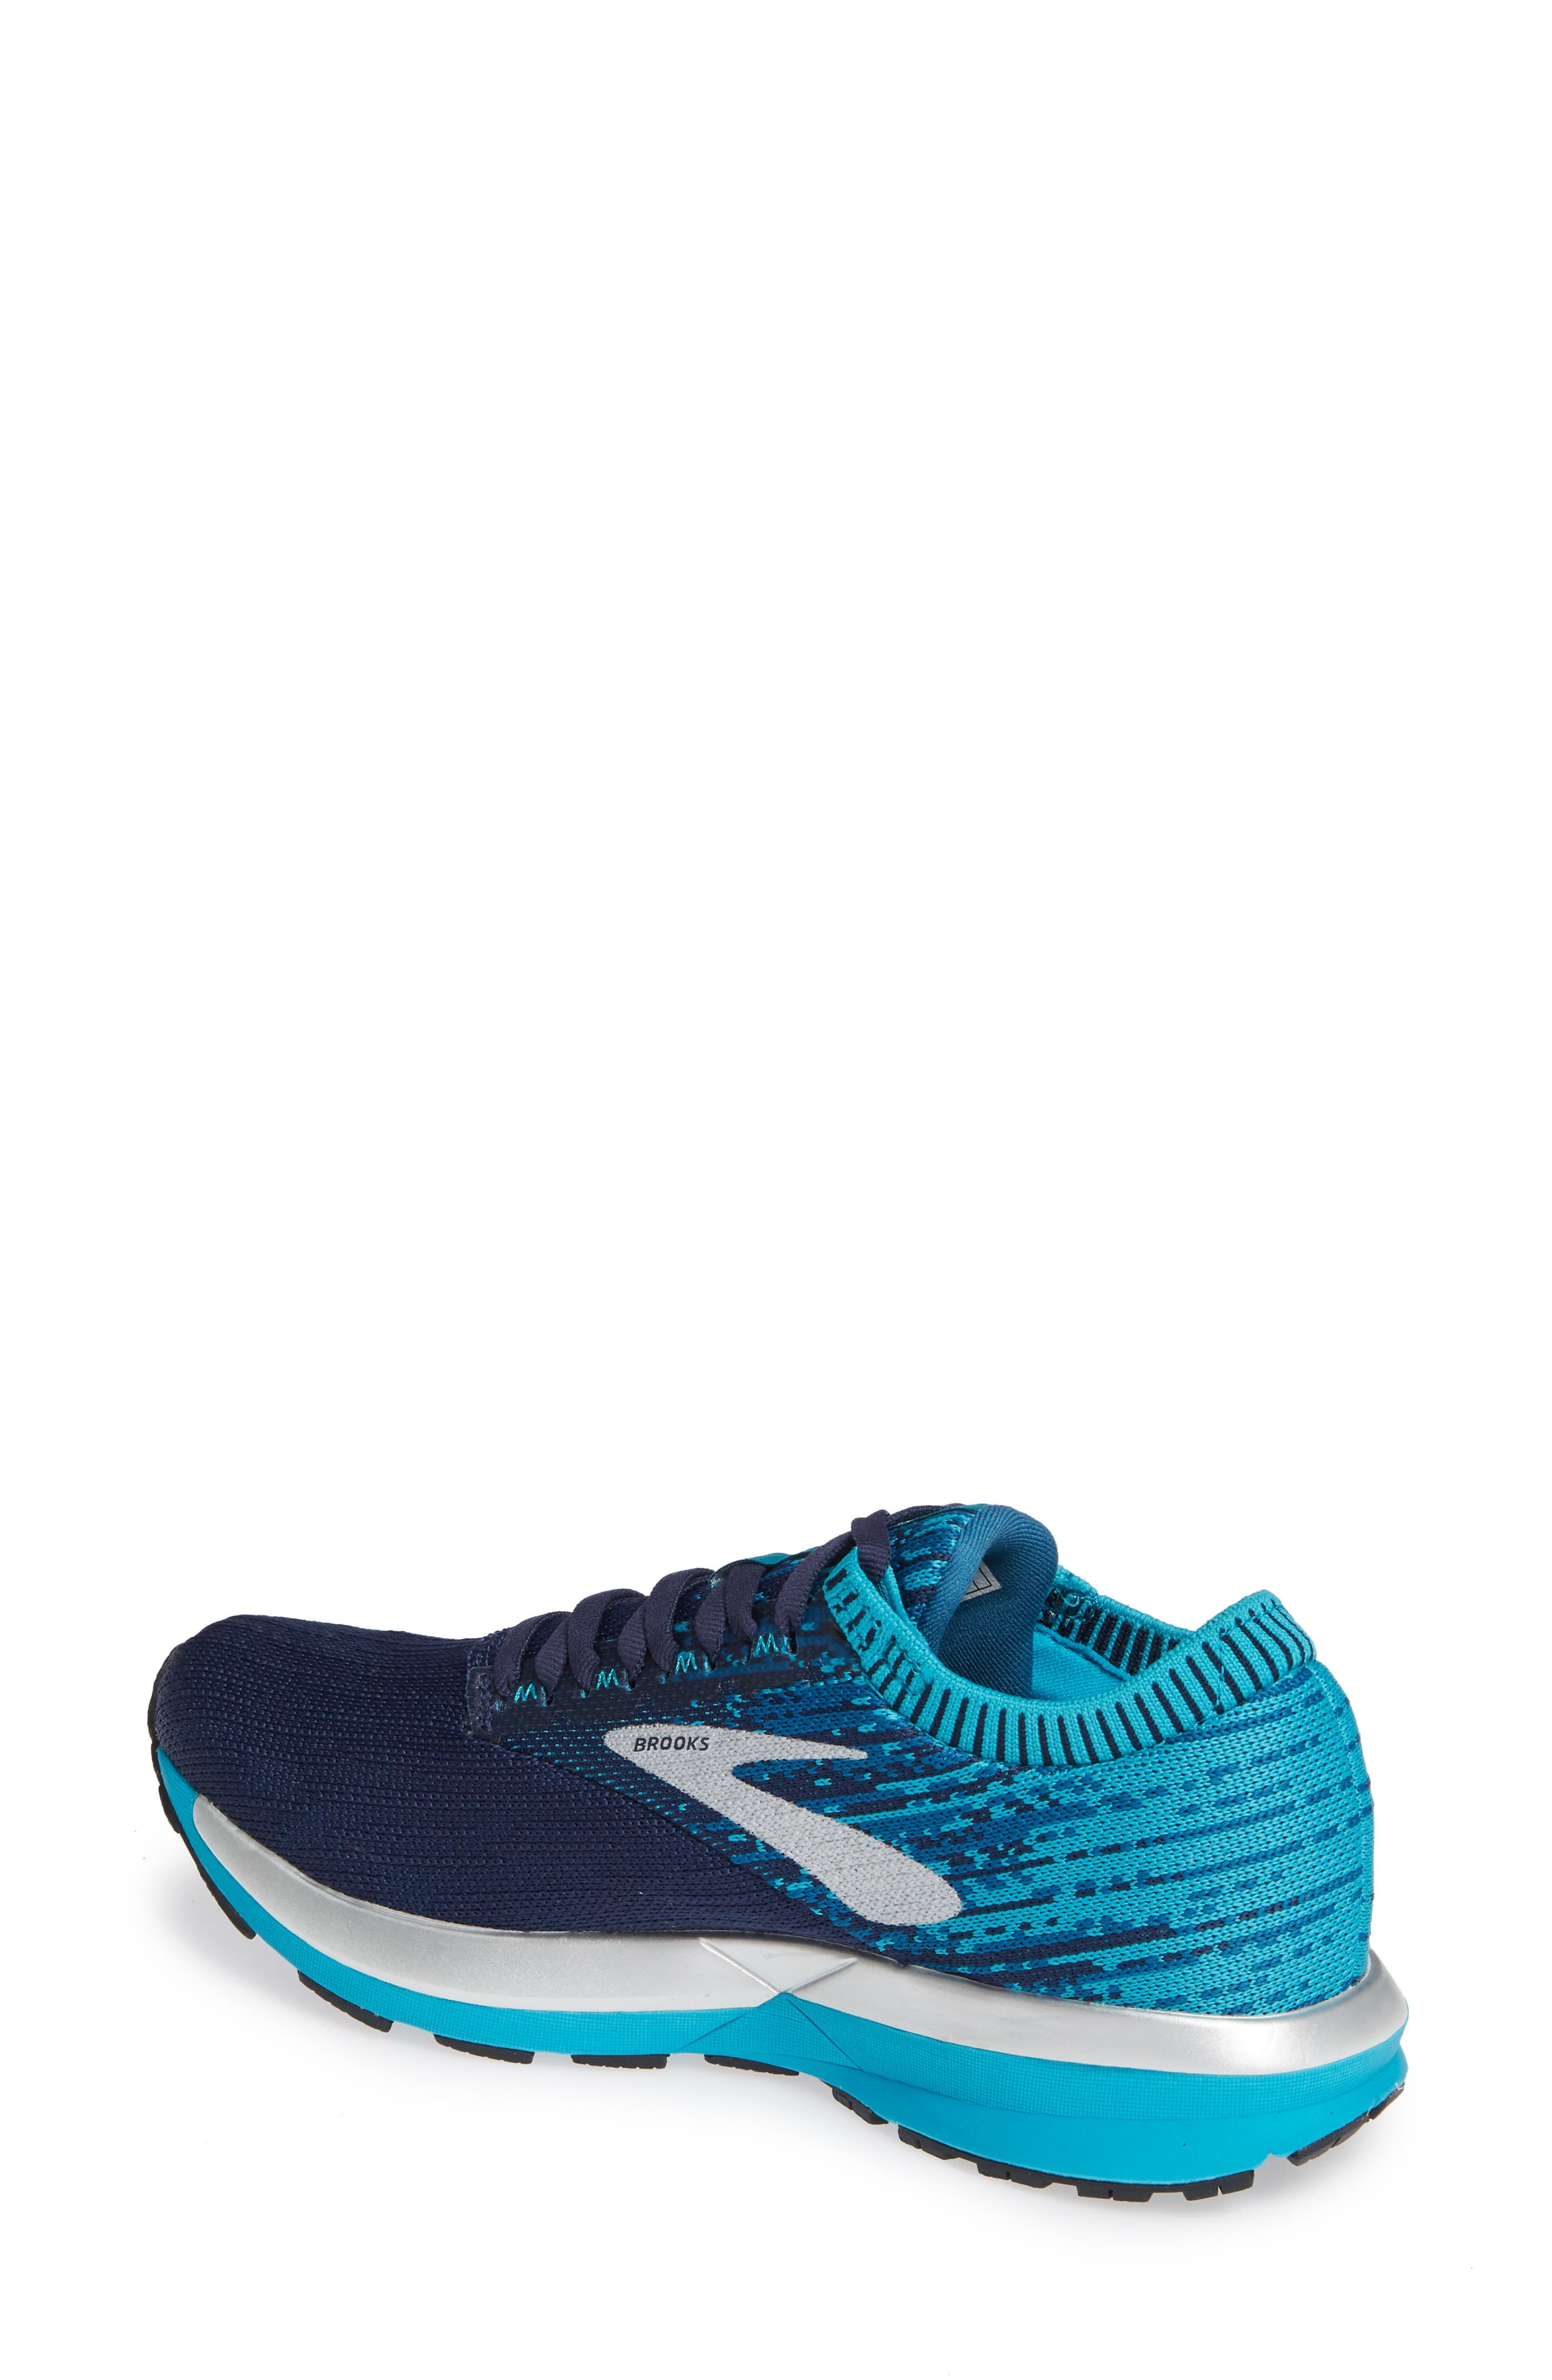 70fe015a461 Grey Brooks for Women  Running Shoes